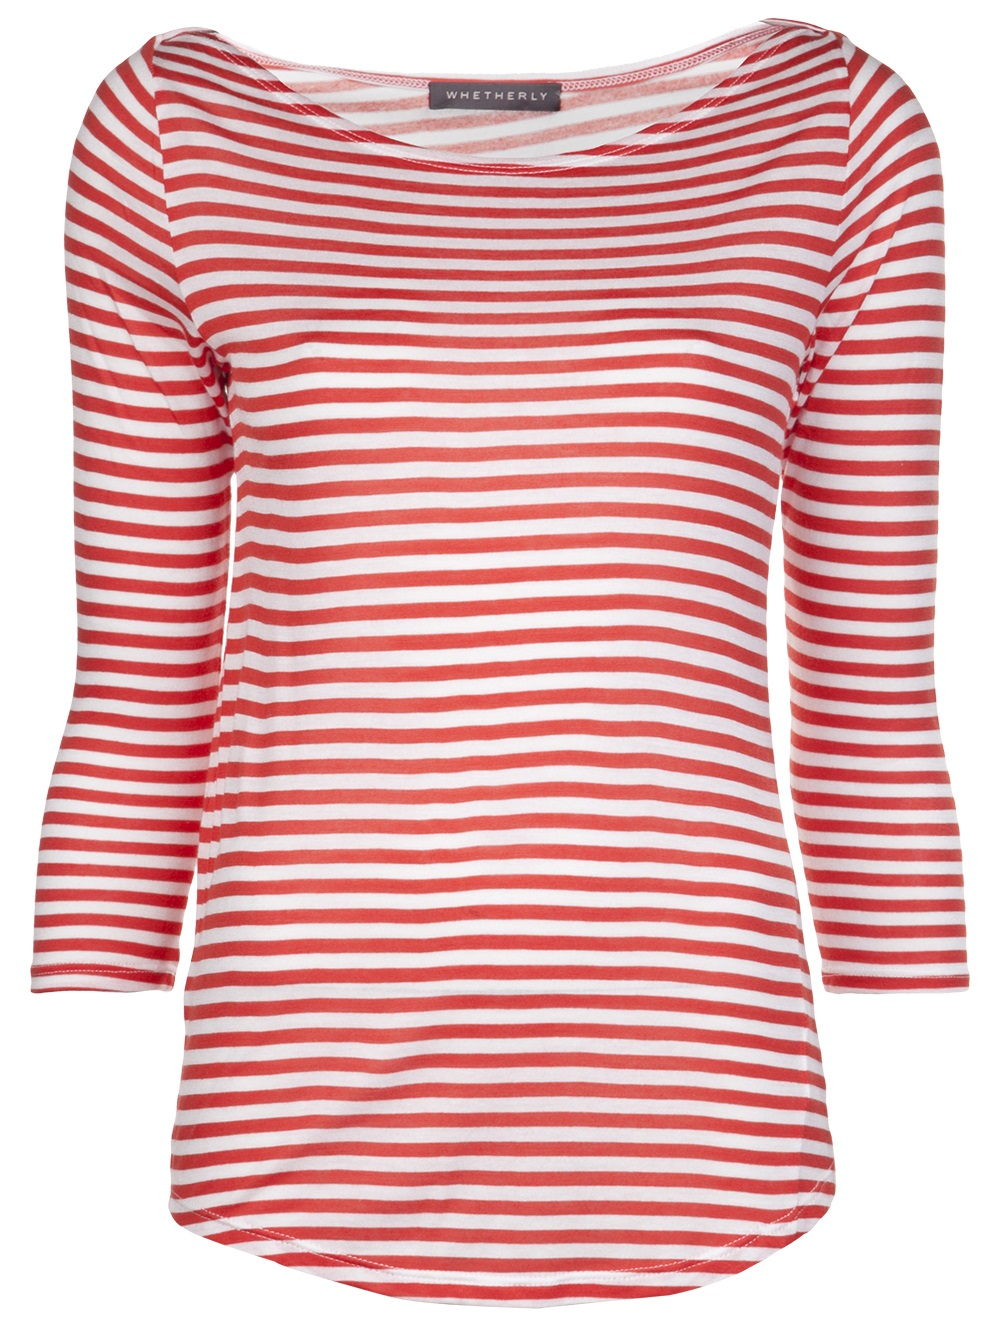 Whetherly Griffin Striped Tee In Red Yellow Orange Lyst